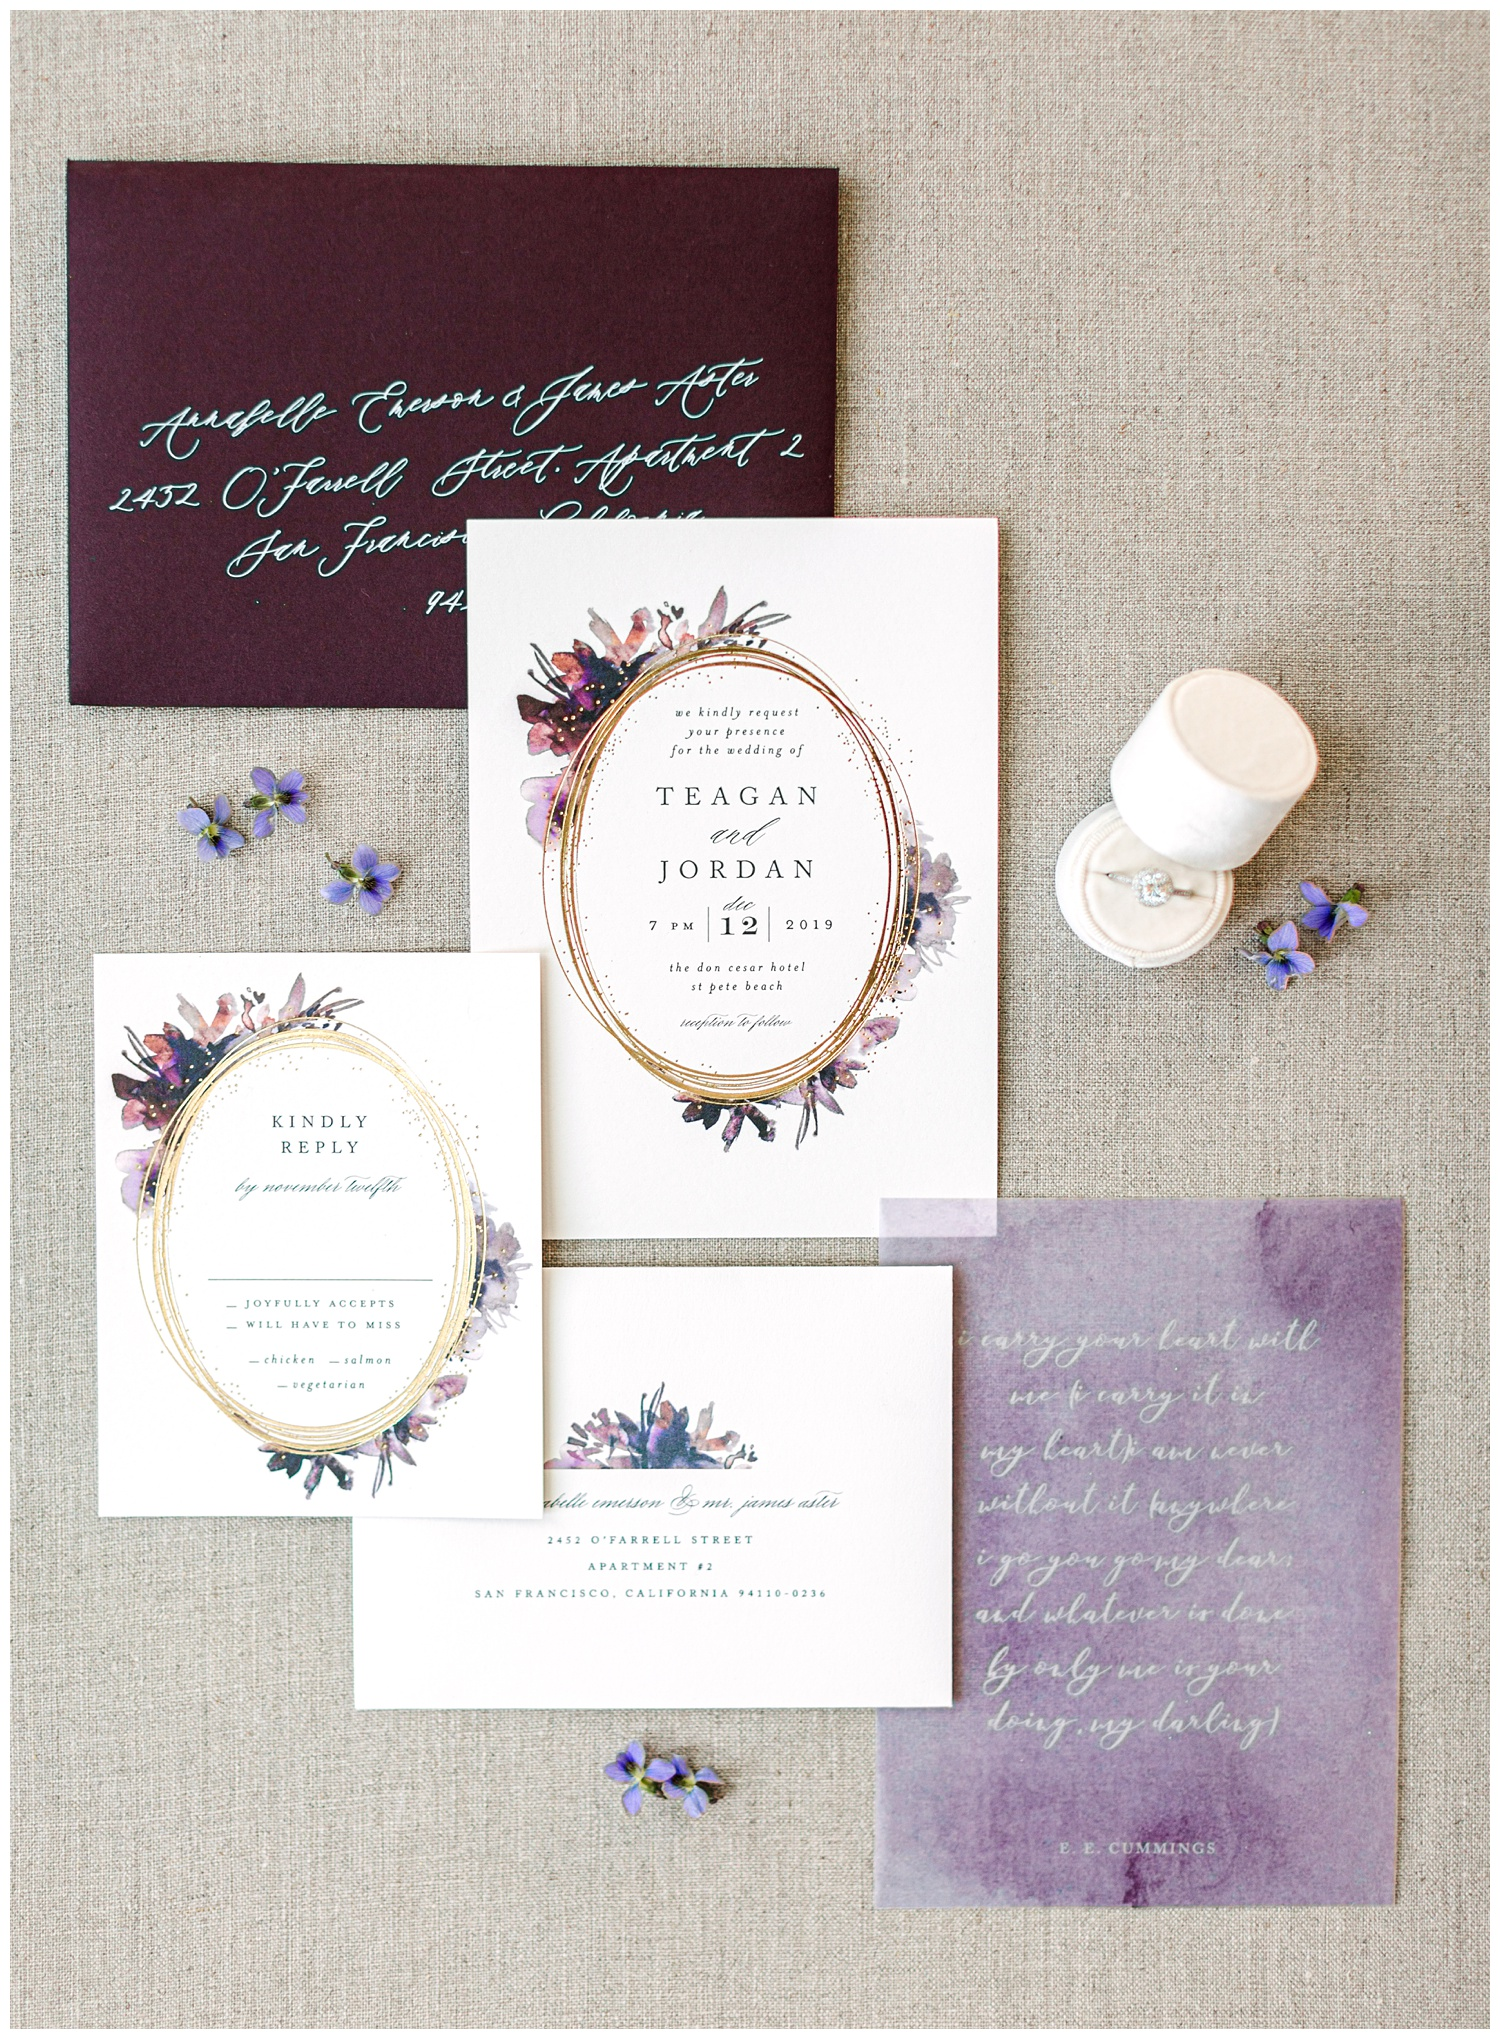 Deep purple and plum watercolor floral wedding invitation suite from Minted complete with gold foil and vellum overlay beautifully styled with purple florals and a cream ring box.